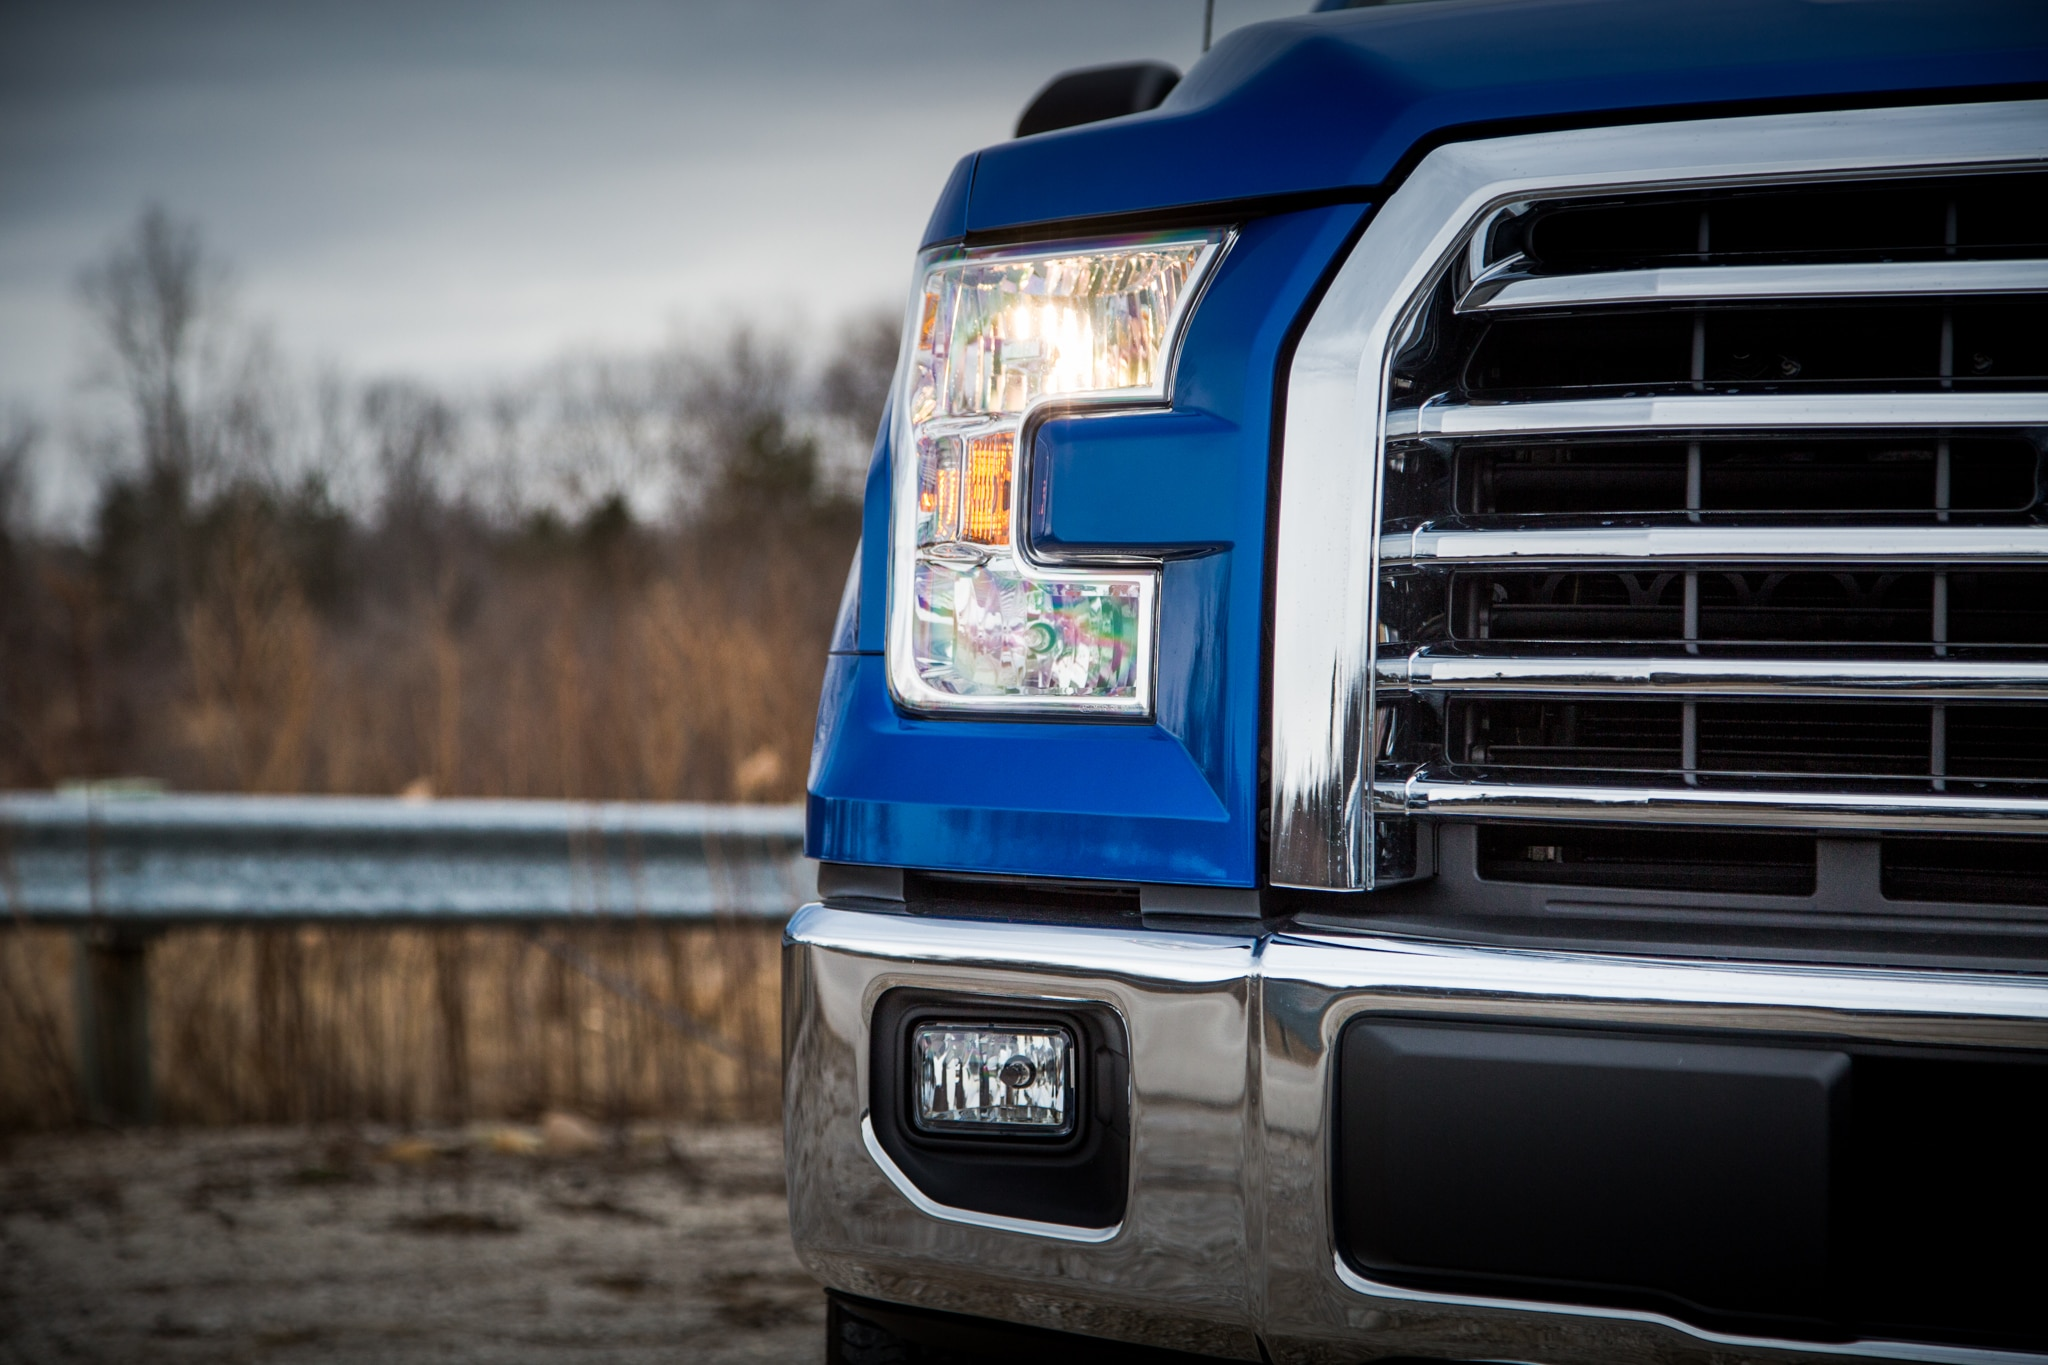 Ford F 150 Truck Bed For Sale >> 2015 Ford F-150 XLT Supercab 4x4 2.7-liter EcoBoost Review